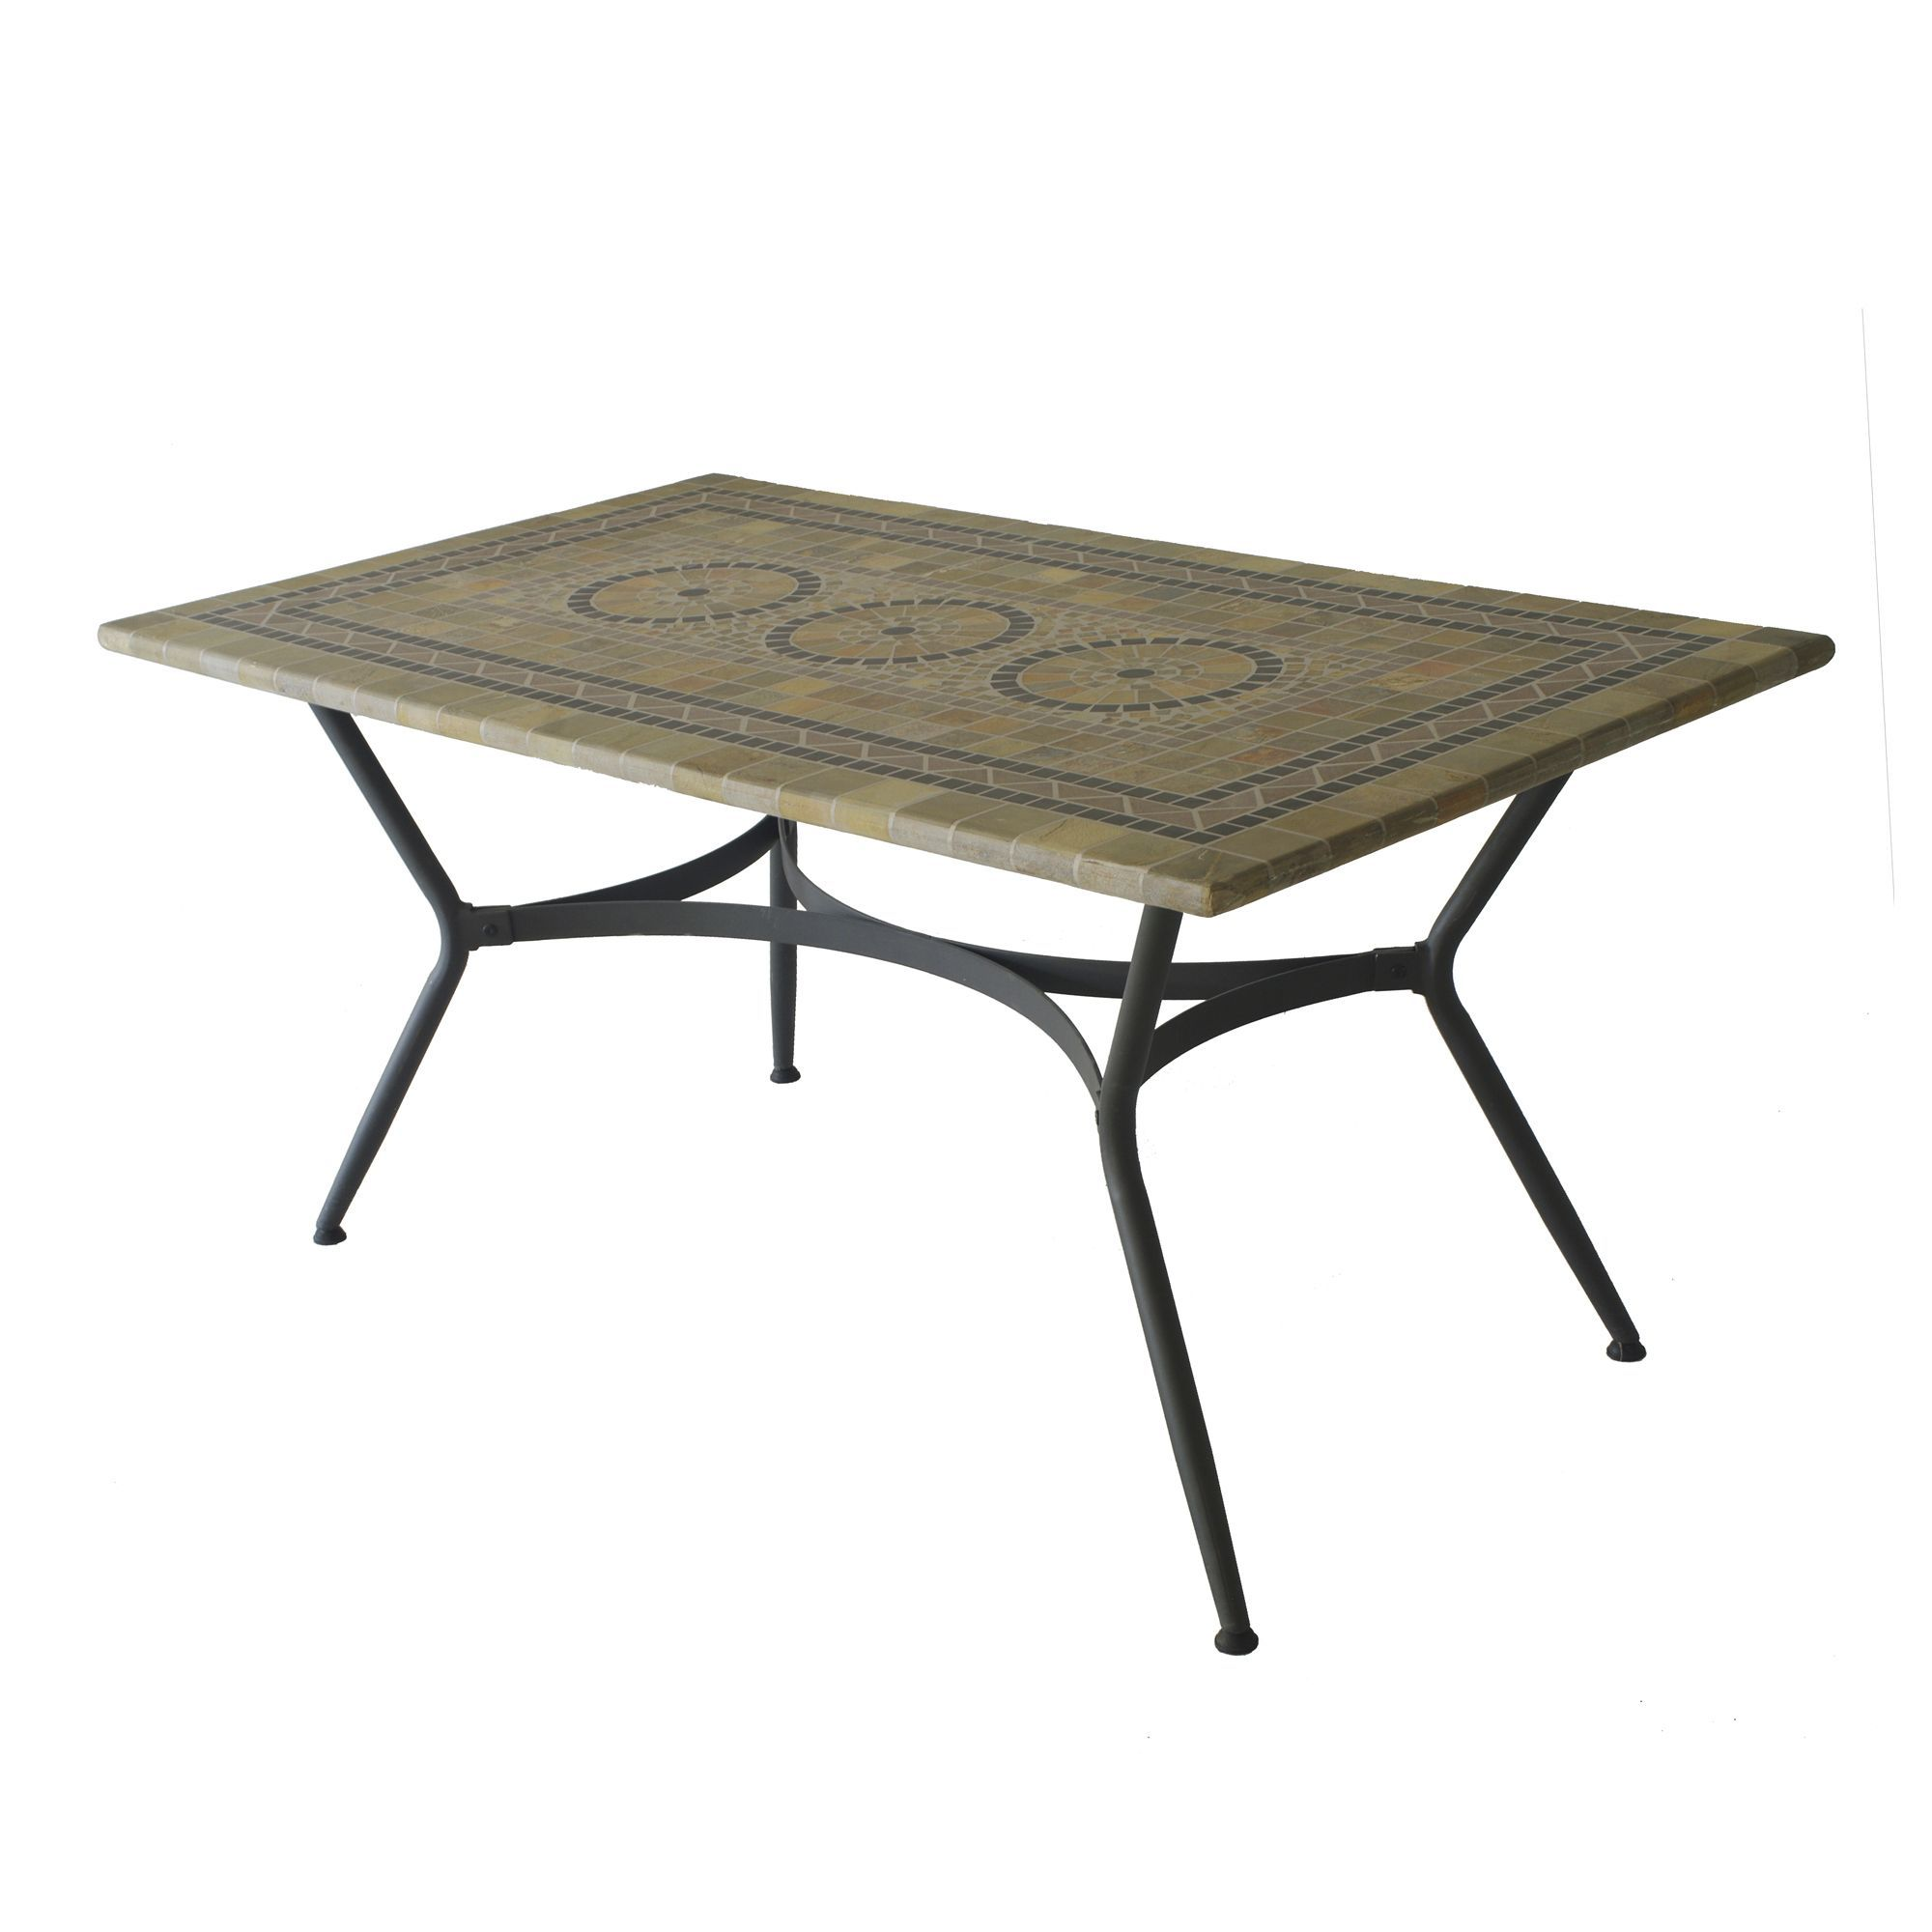 Table de jardin rectangulaire mosa que noir oxyd agadir for Table 0 5 ans portneuf